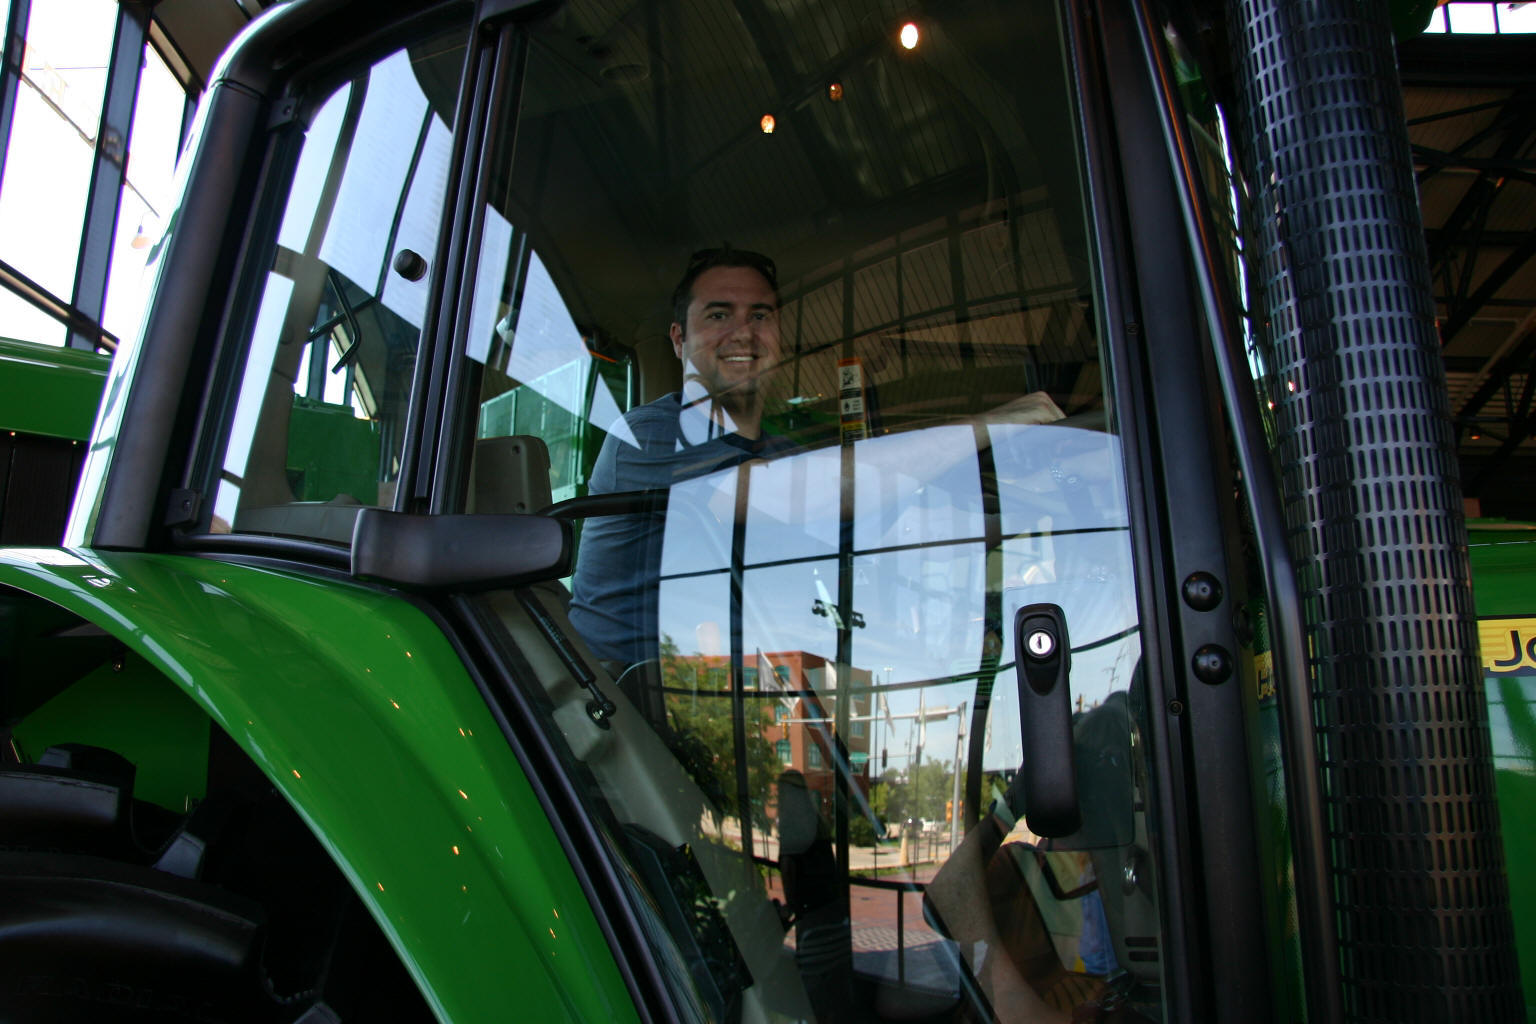 Farmer Jon plays with the tractors